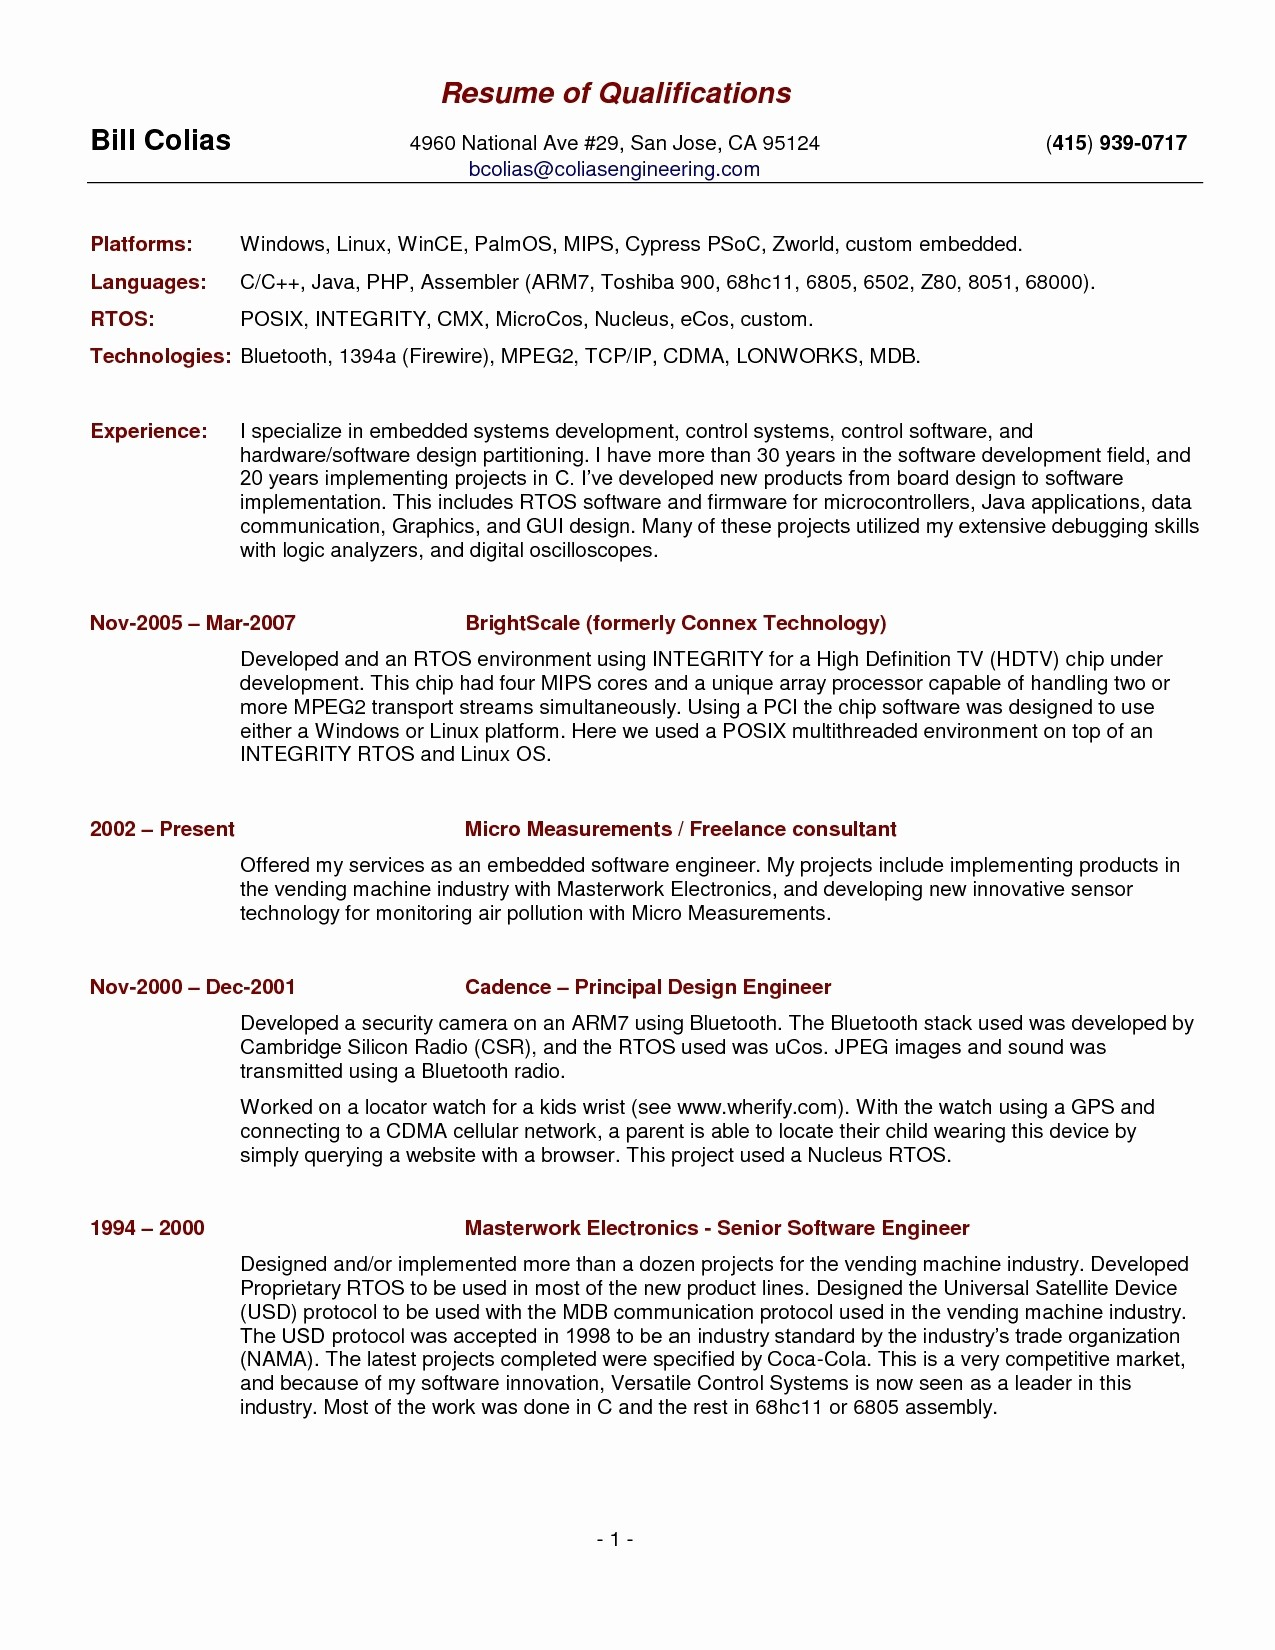 Resume Template Engineering - Download Unique Best Resume Template